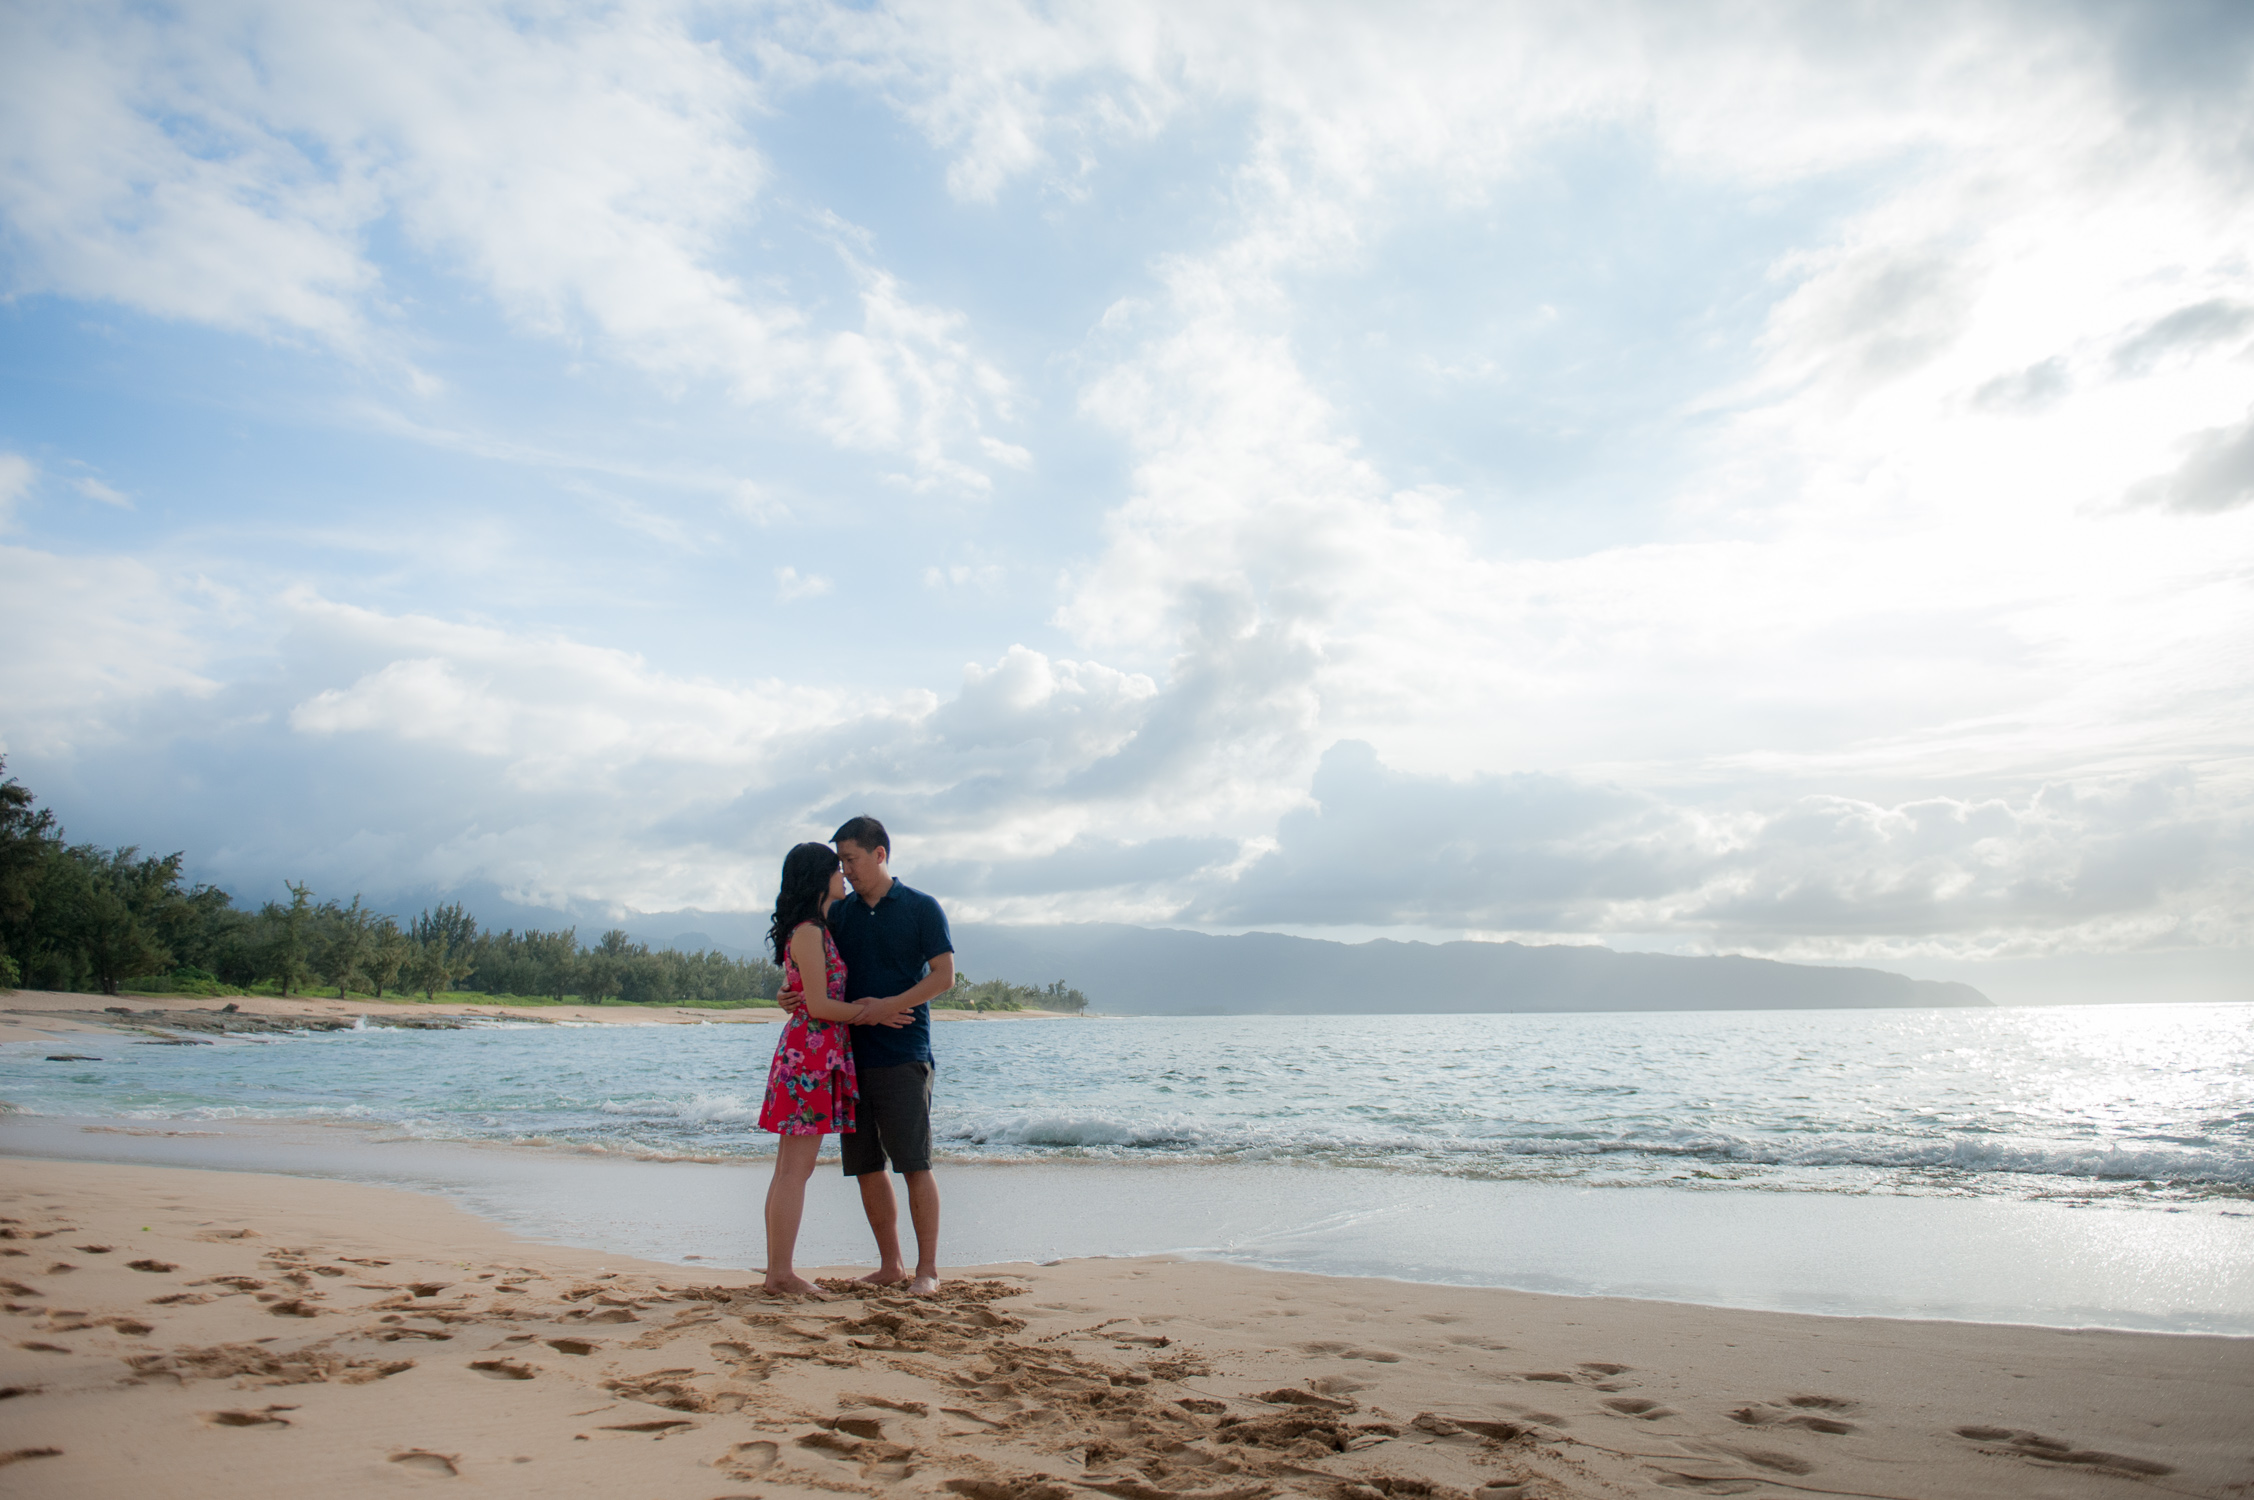 Far away shot of couple with clouds and island in backdrop